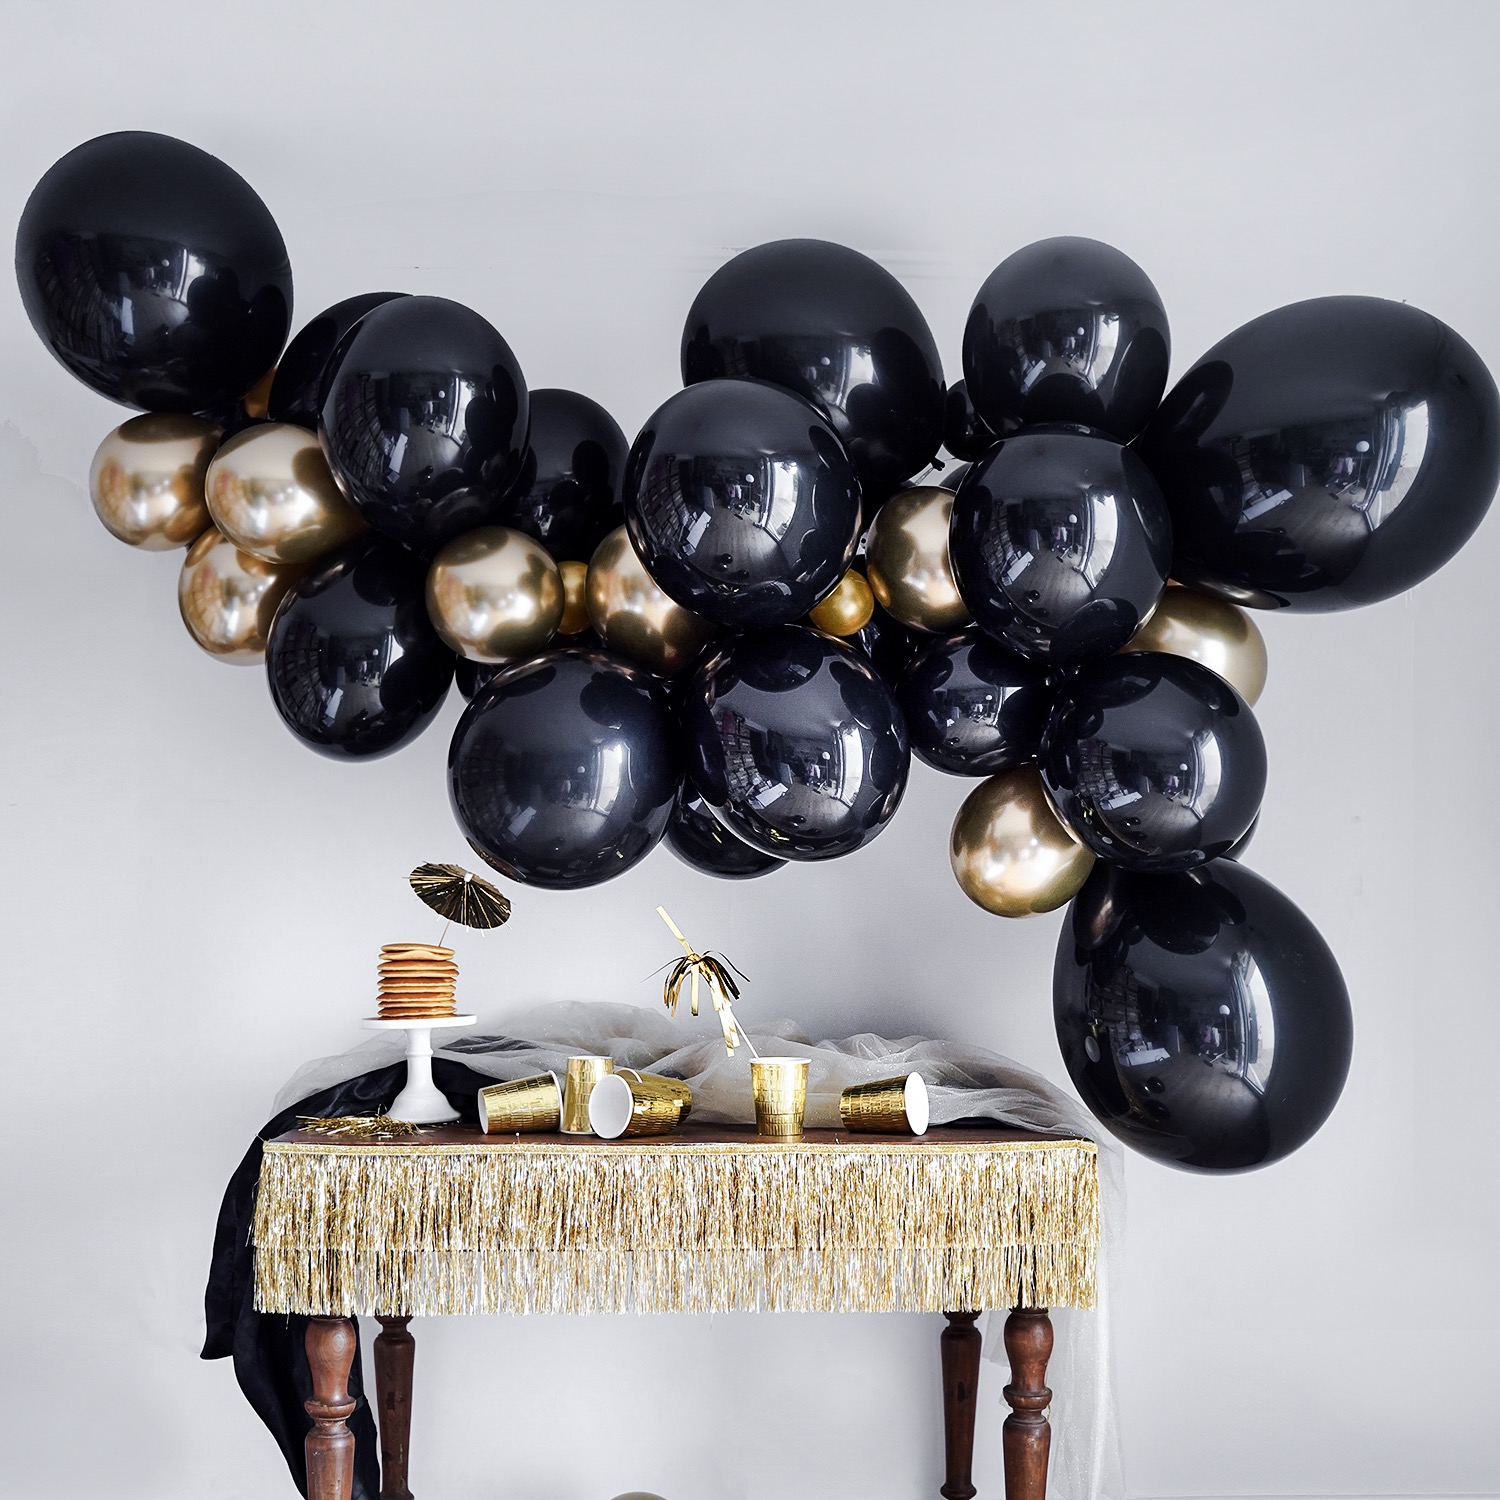 guirlande-ballon-noir-et-gold-sweet-party-day